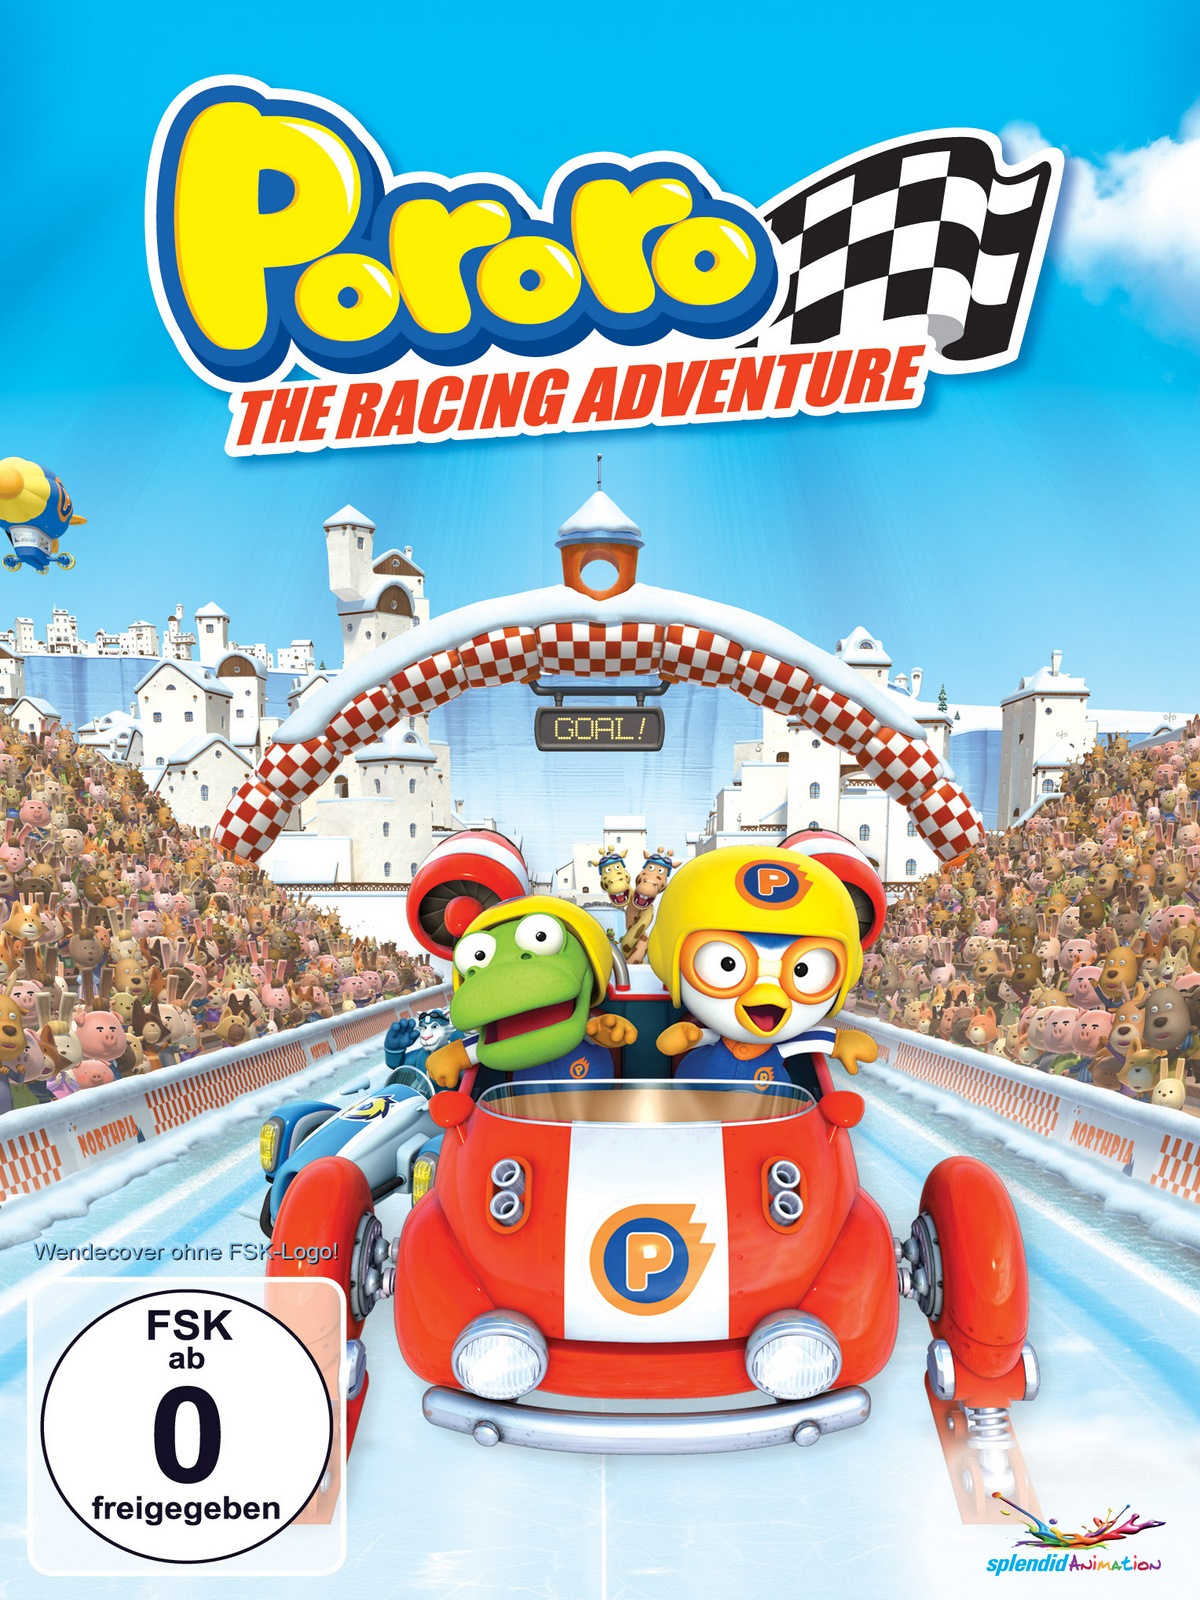 Pororo - The Racing Adventure - Film 2013 - FILMSTARTS.de